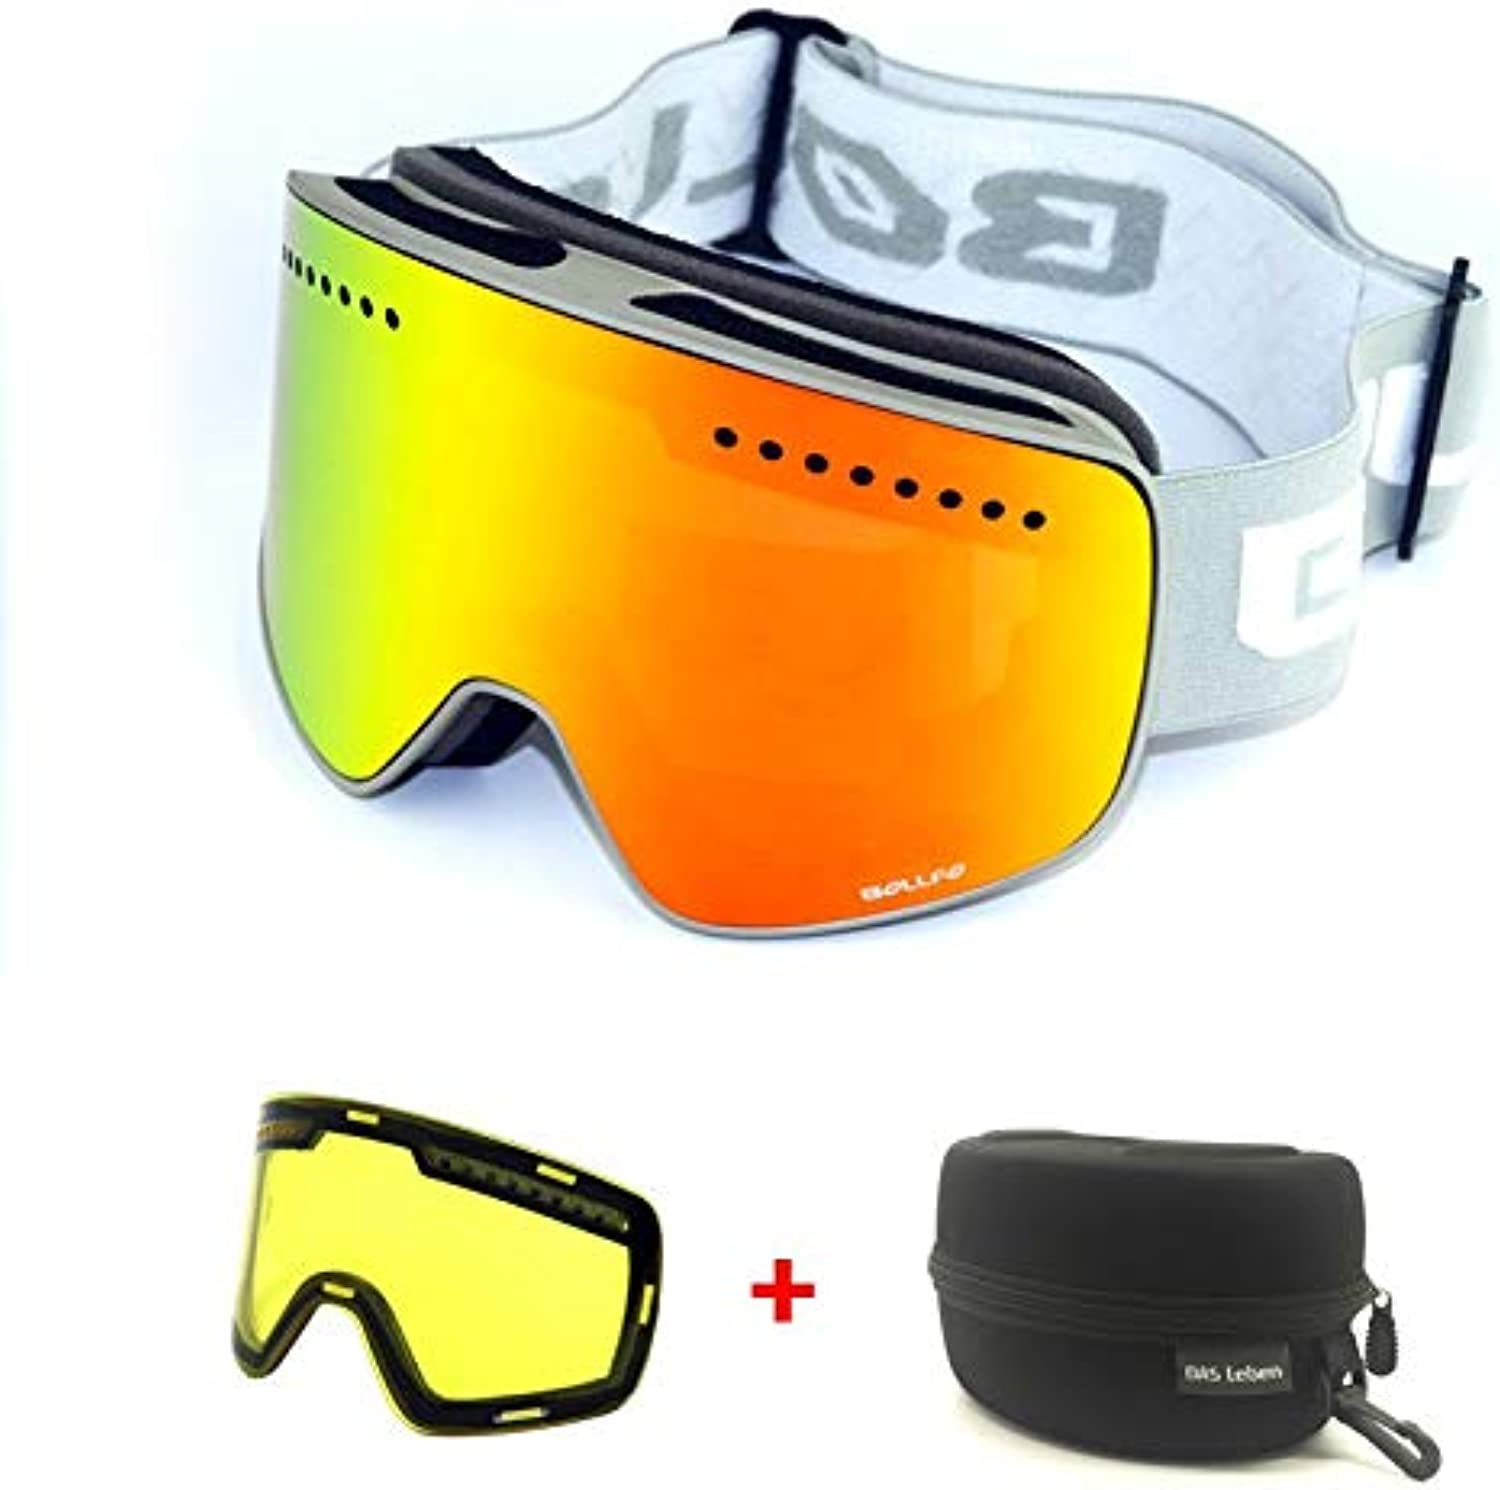 Polycarbonate INF Magnetic Double Layers Lens Ski Goggles Masks Anti-fog UV400 Snowboard Goggles Ski Glasses Eyewear for men women with case